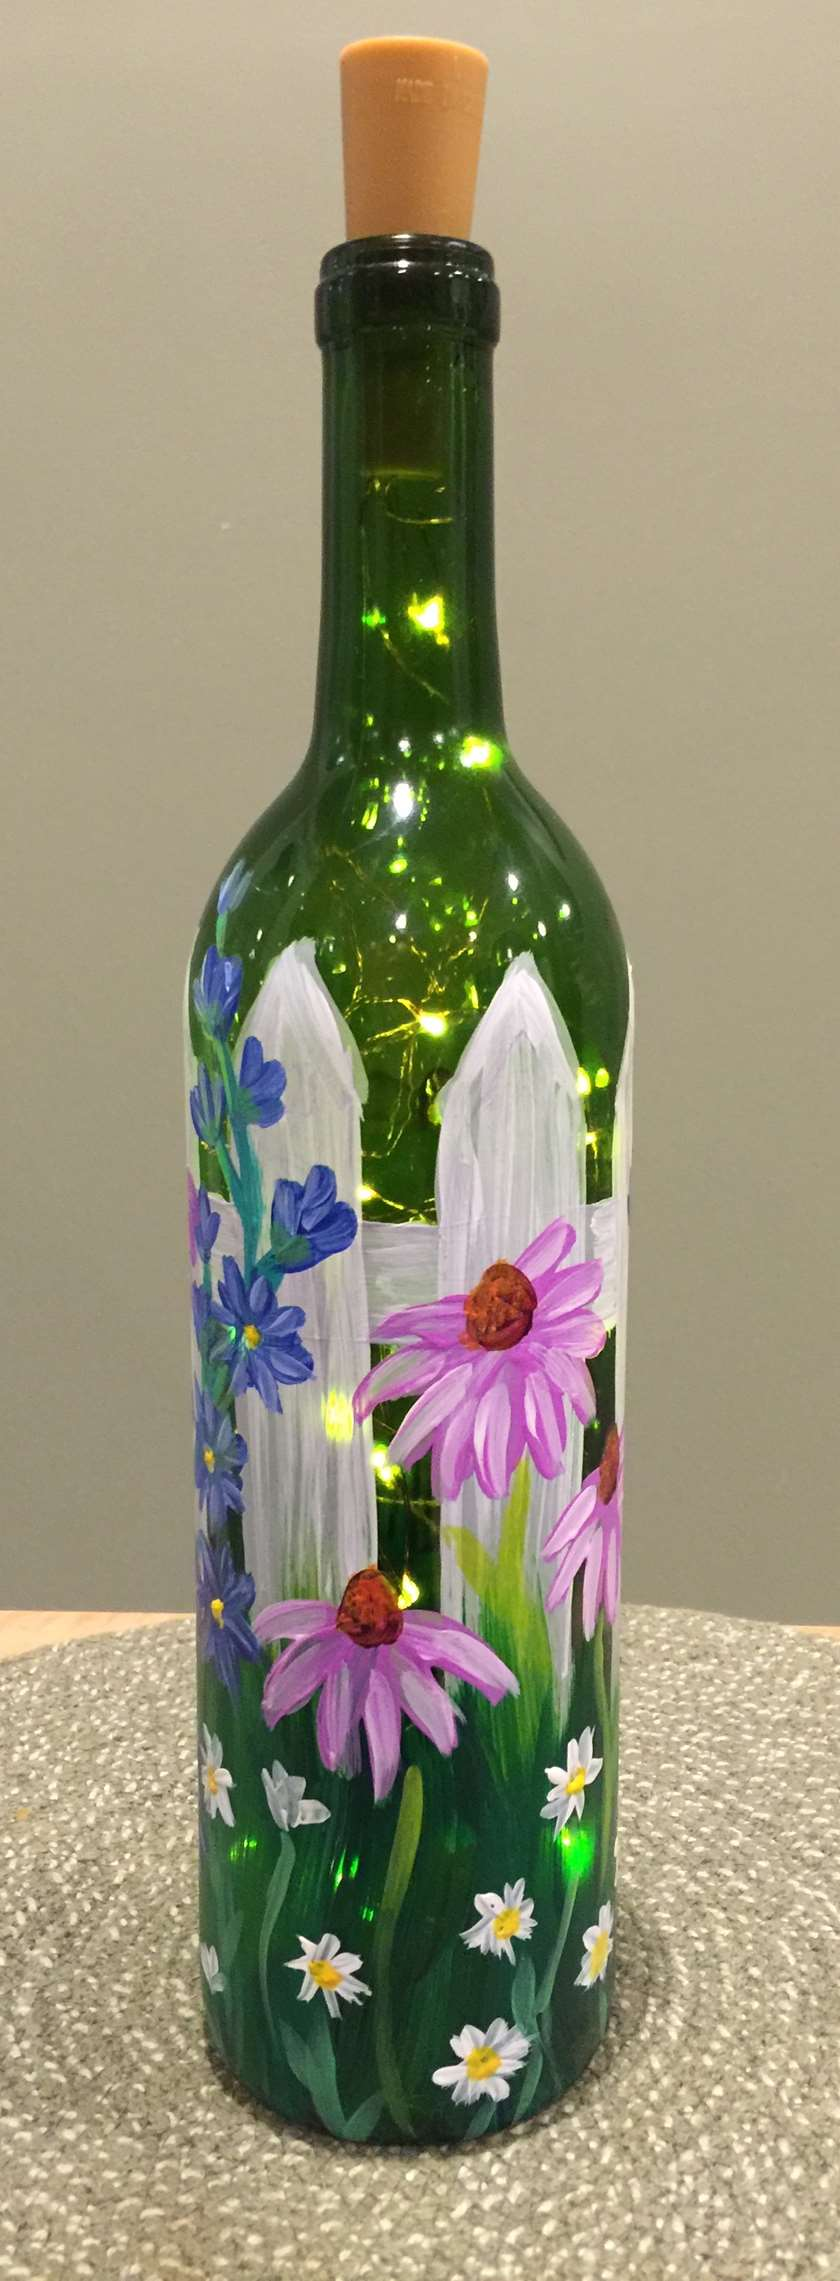 Wildflower Garden Wine Bottle with Lights - In Studio Event - Limited Seating Available